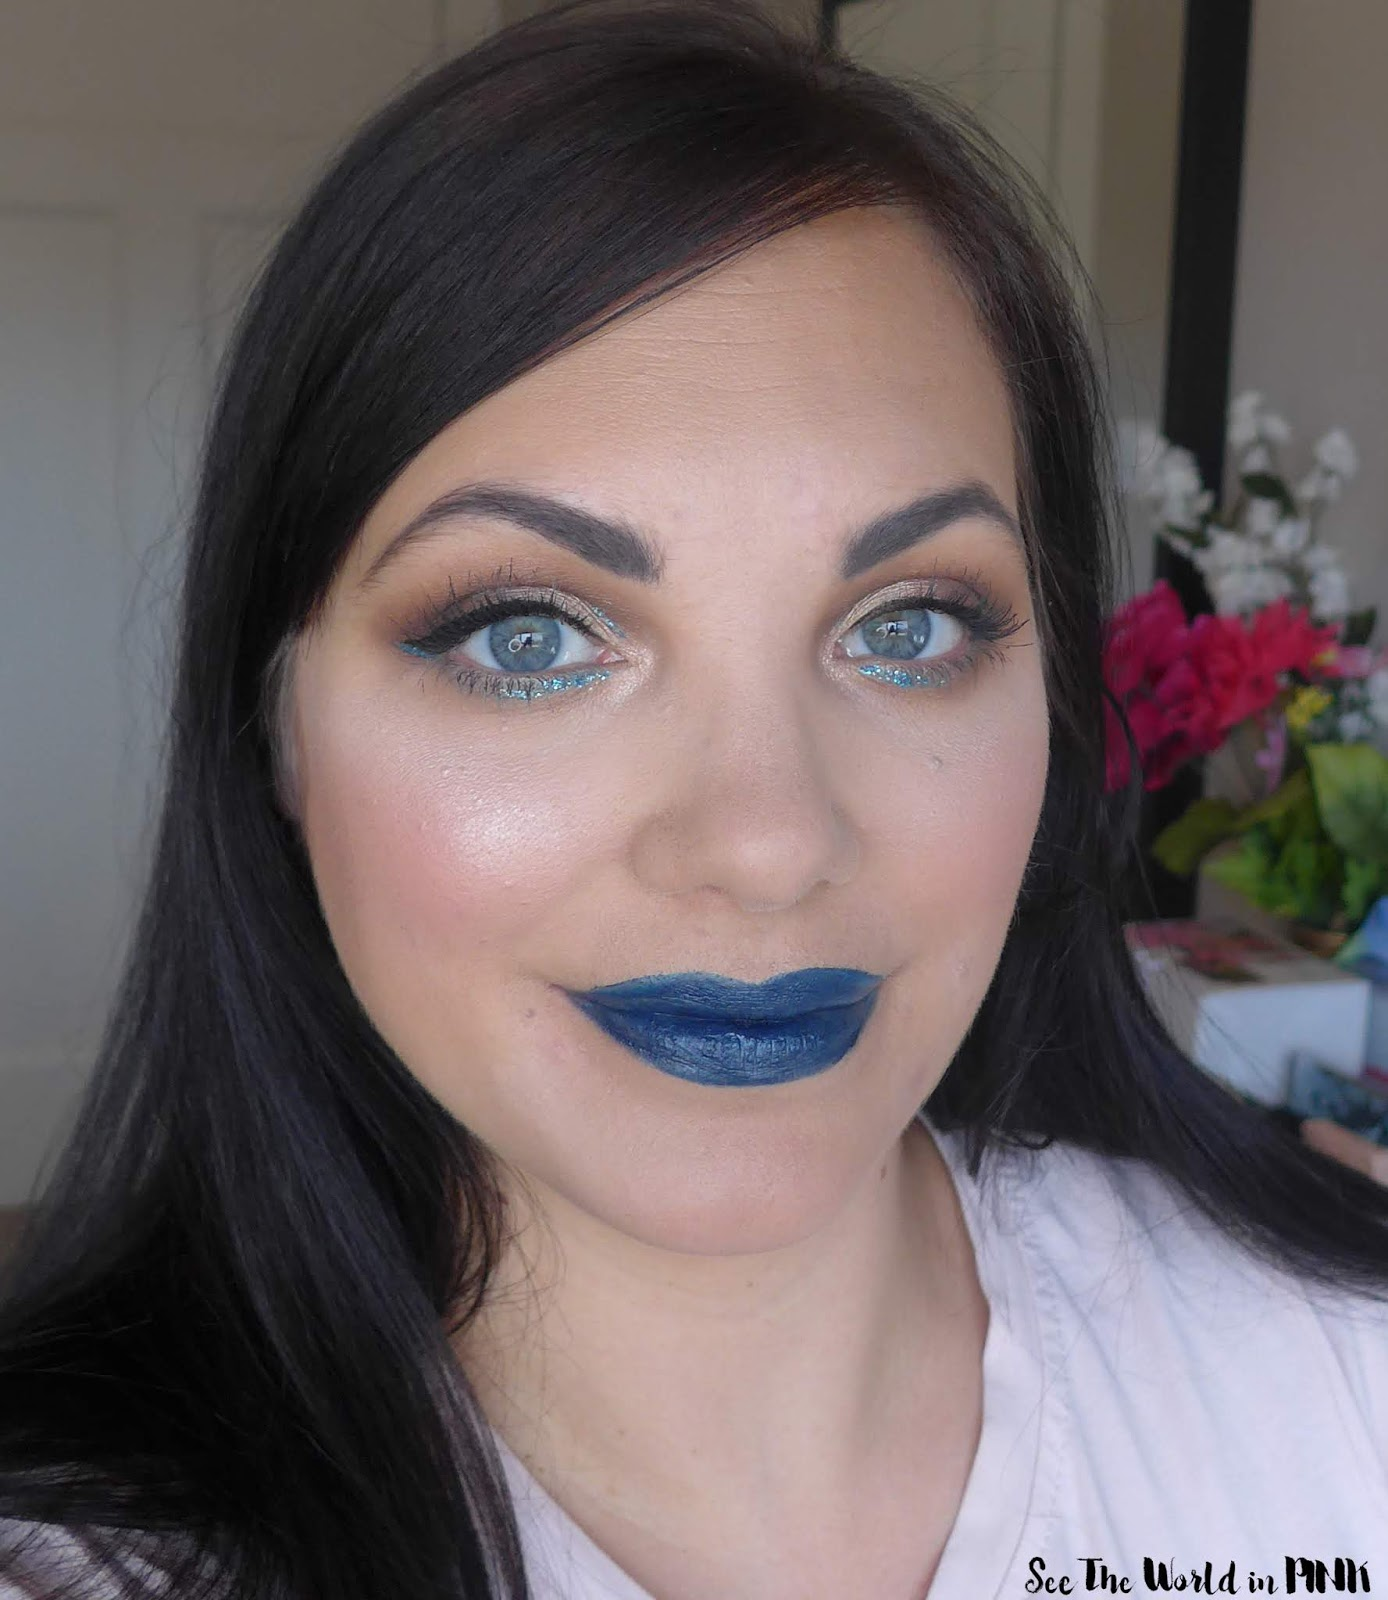 January Shop My Stash Makeup Look - Classic Blue and Making My Own Lipstick